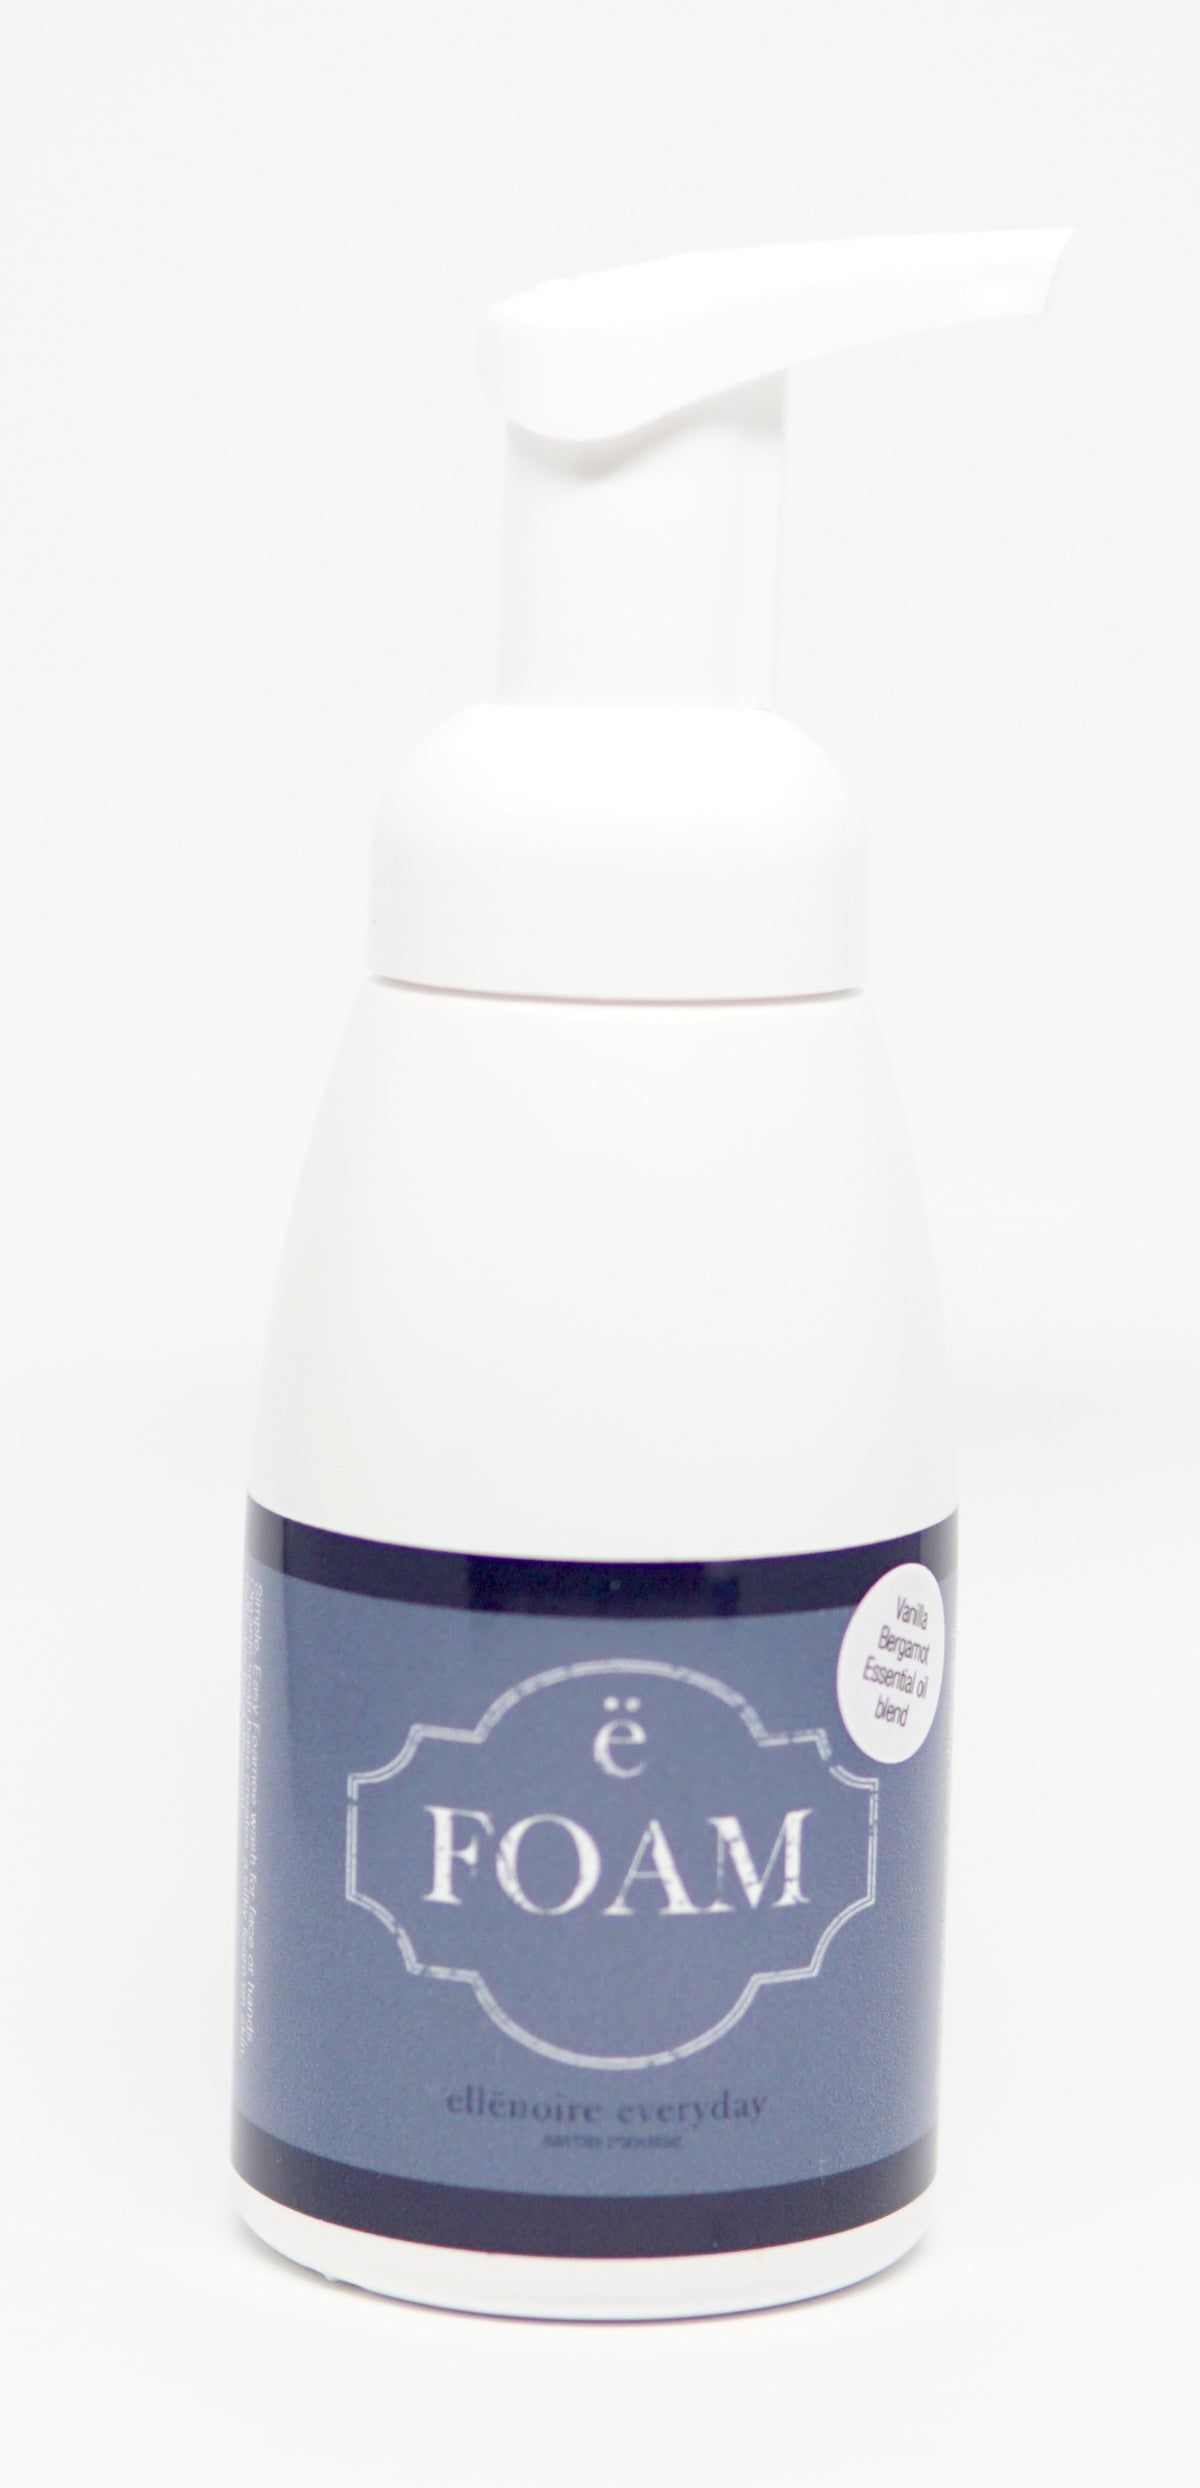 ellënoire everyday Organic Foam Wash-Bath Products-ellënoire body, bath fragrance & curly hair